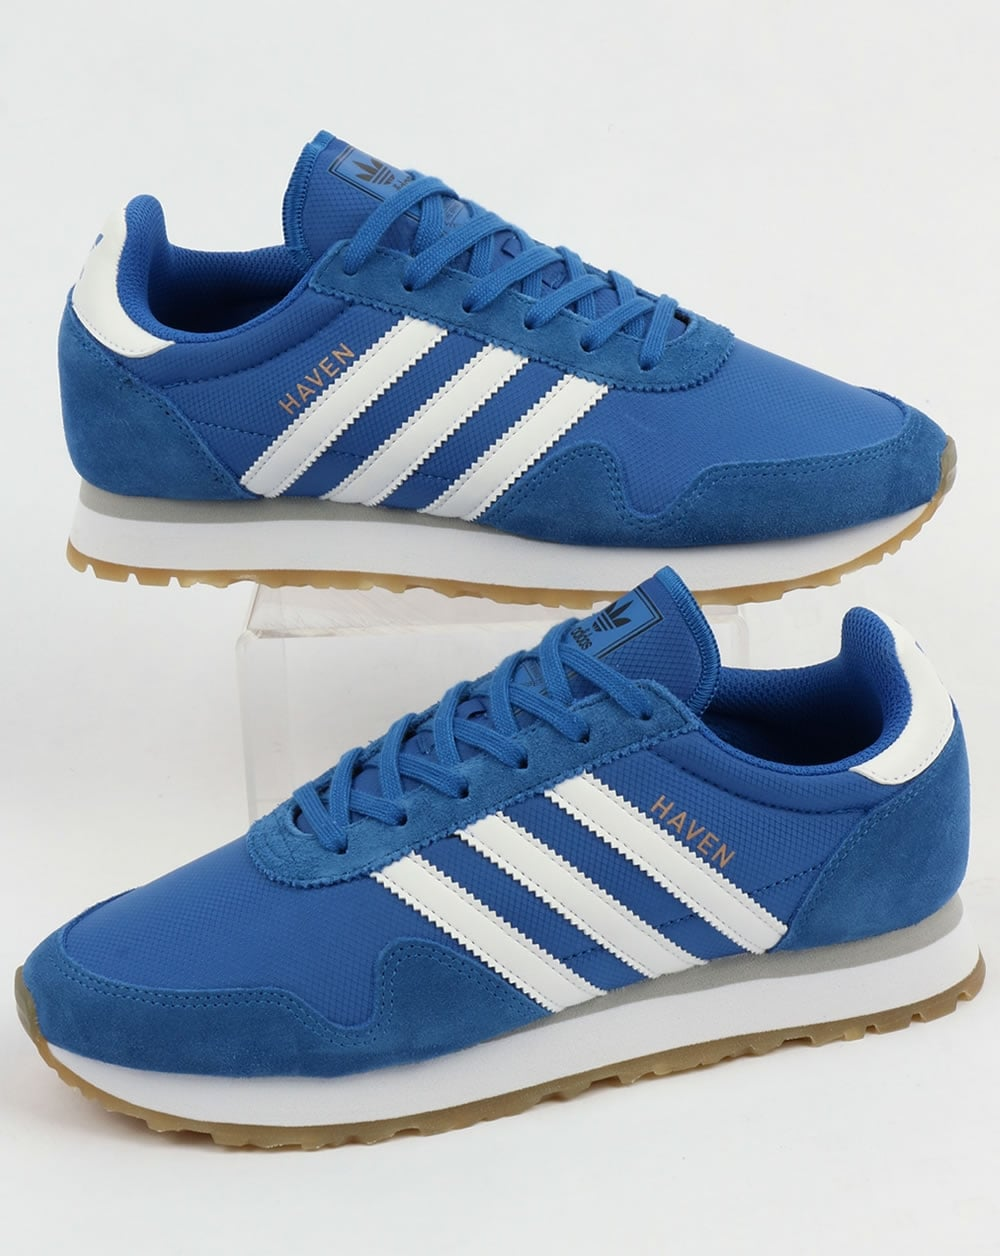 adidas Trainers Adidas Haven Trainers Blue White Gum 68d0cc36d